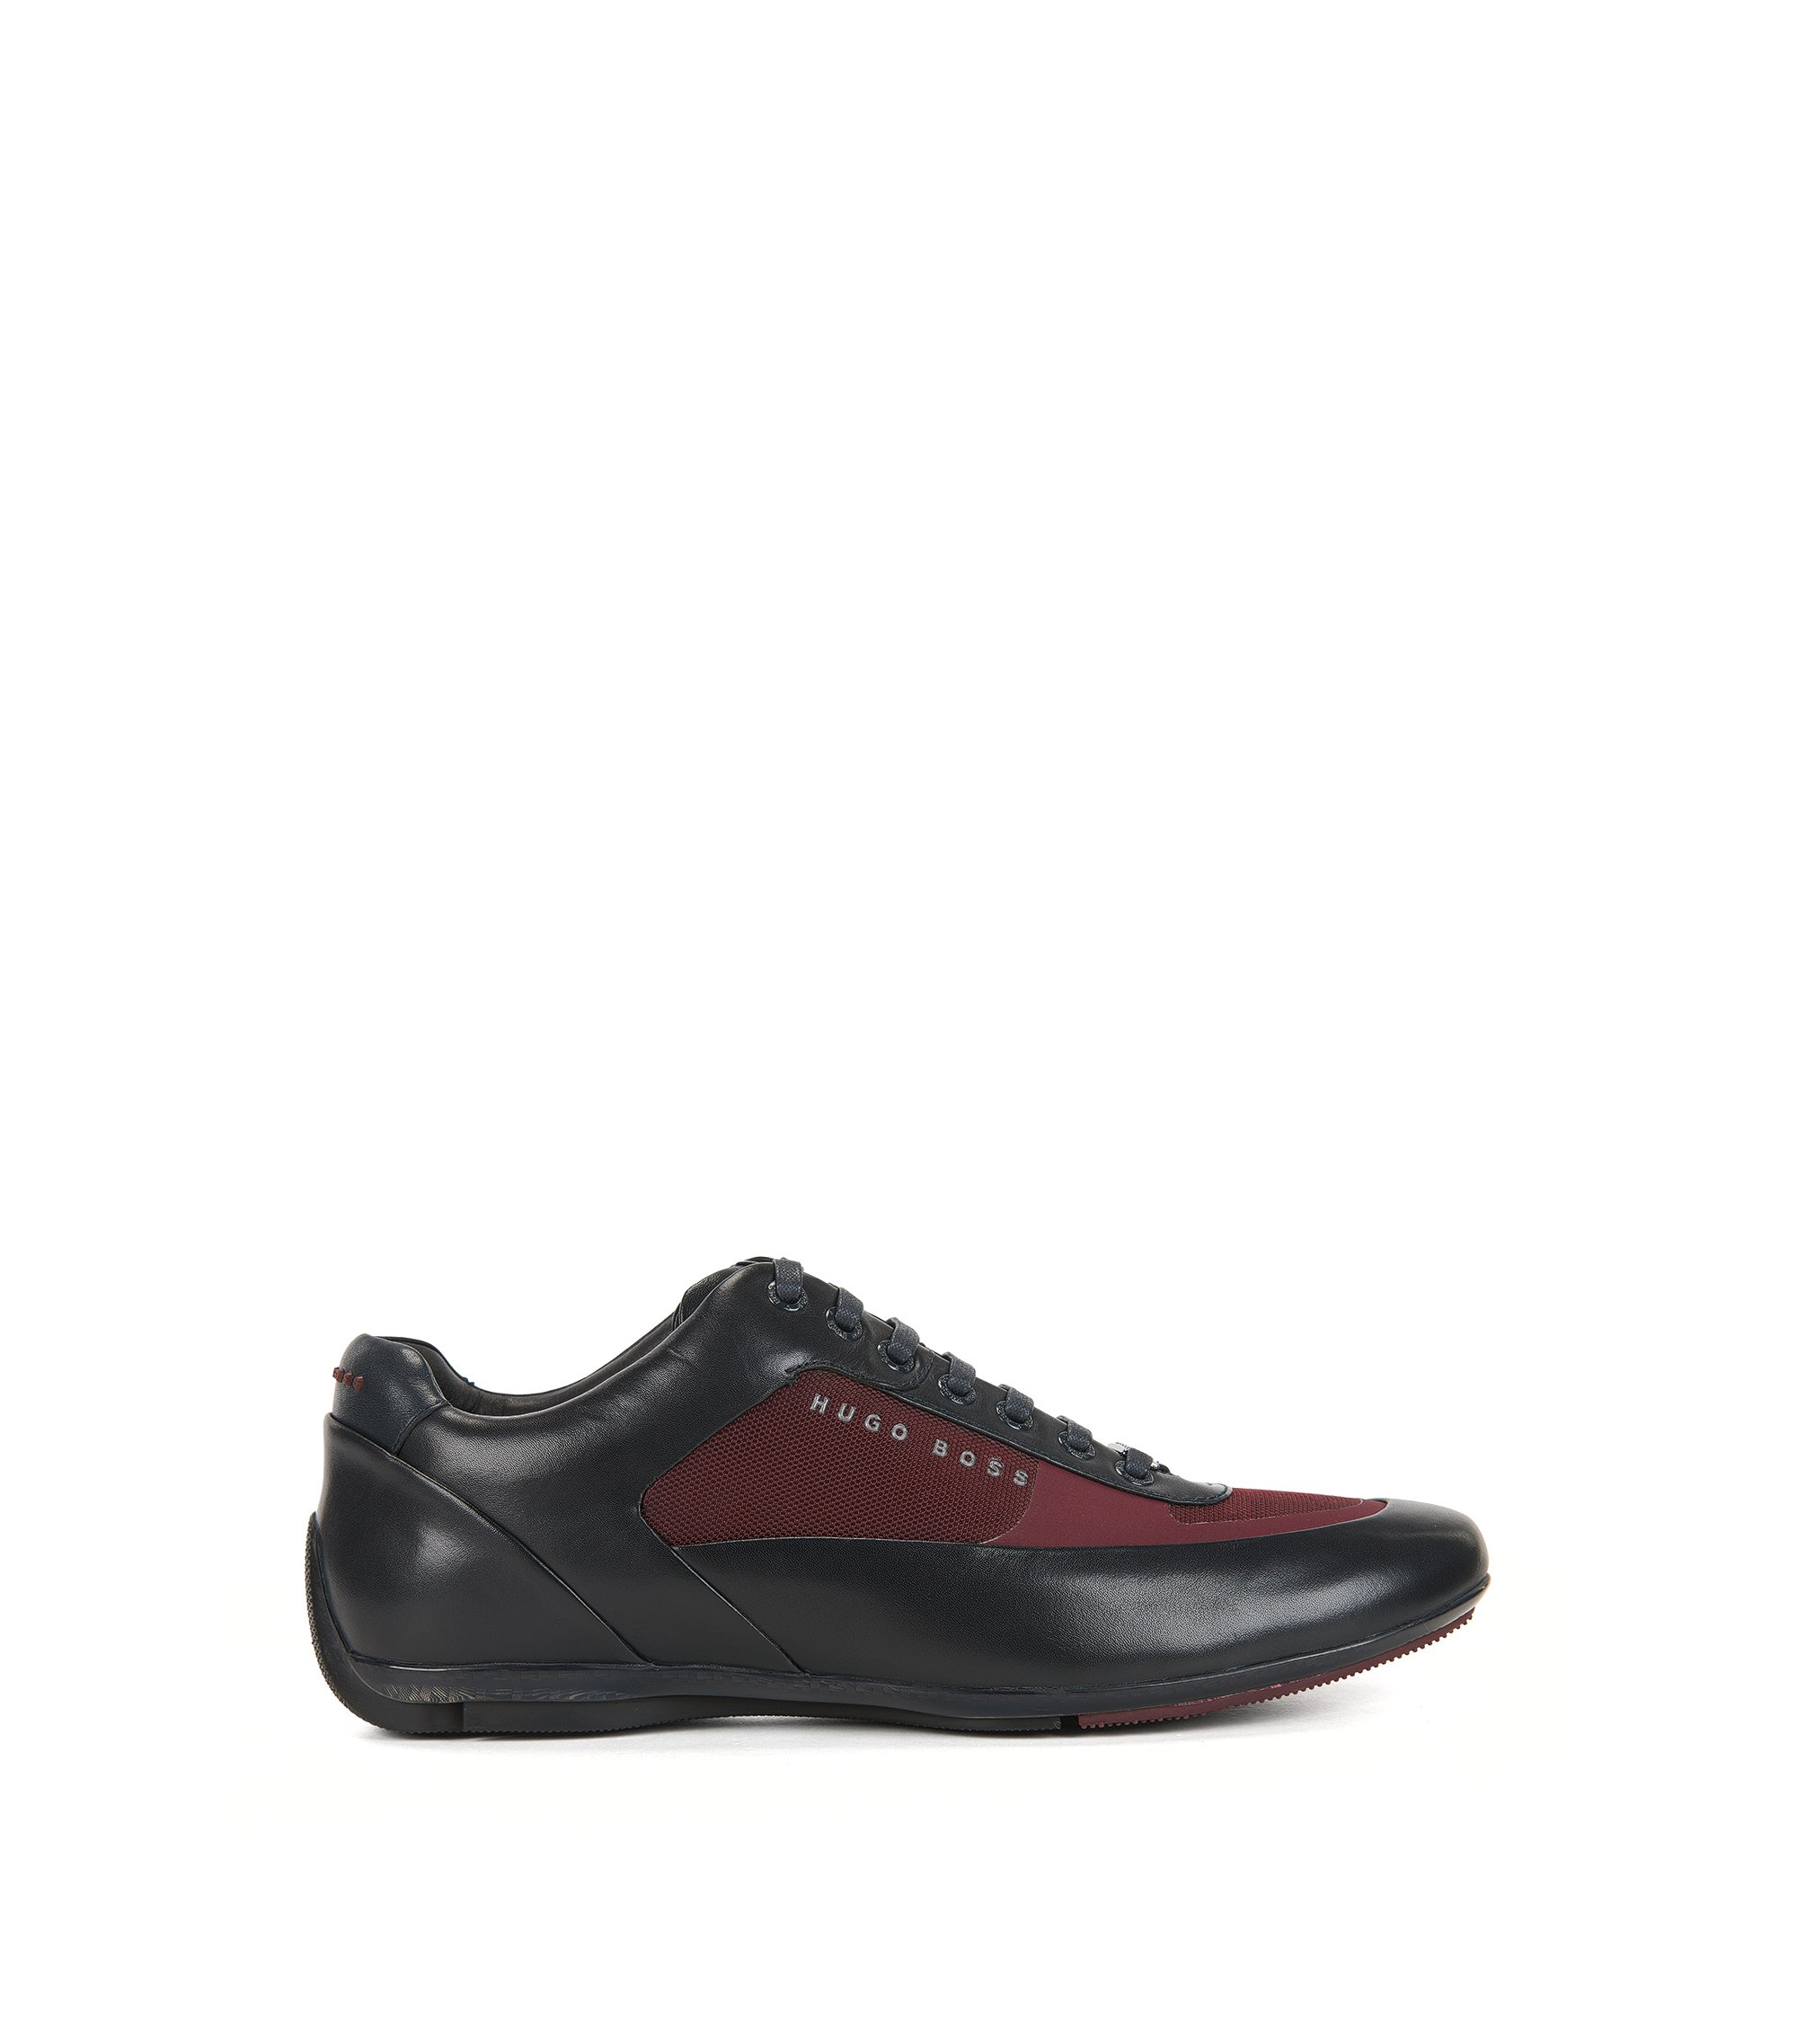 Leather Sneaker | HBRacing Lowp Itny, Dark Red